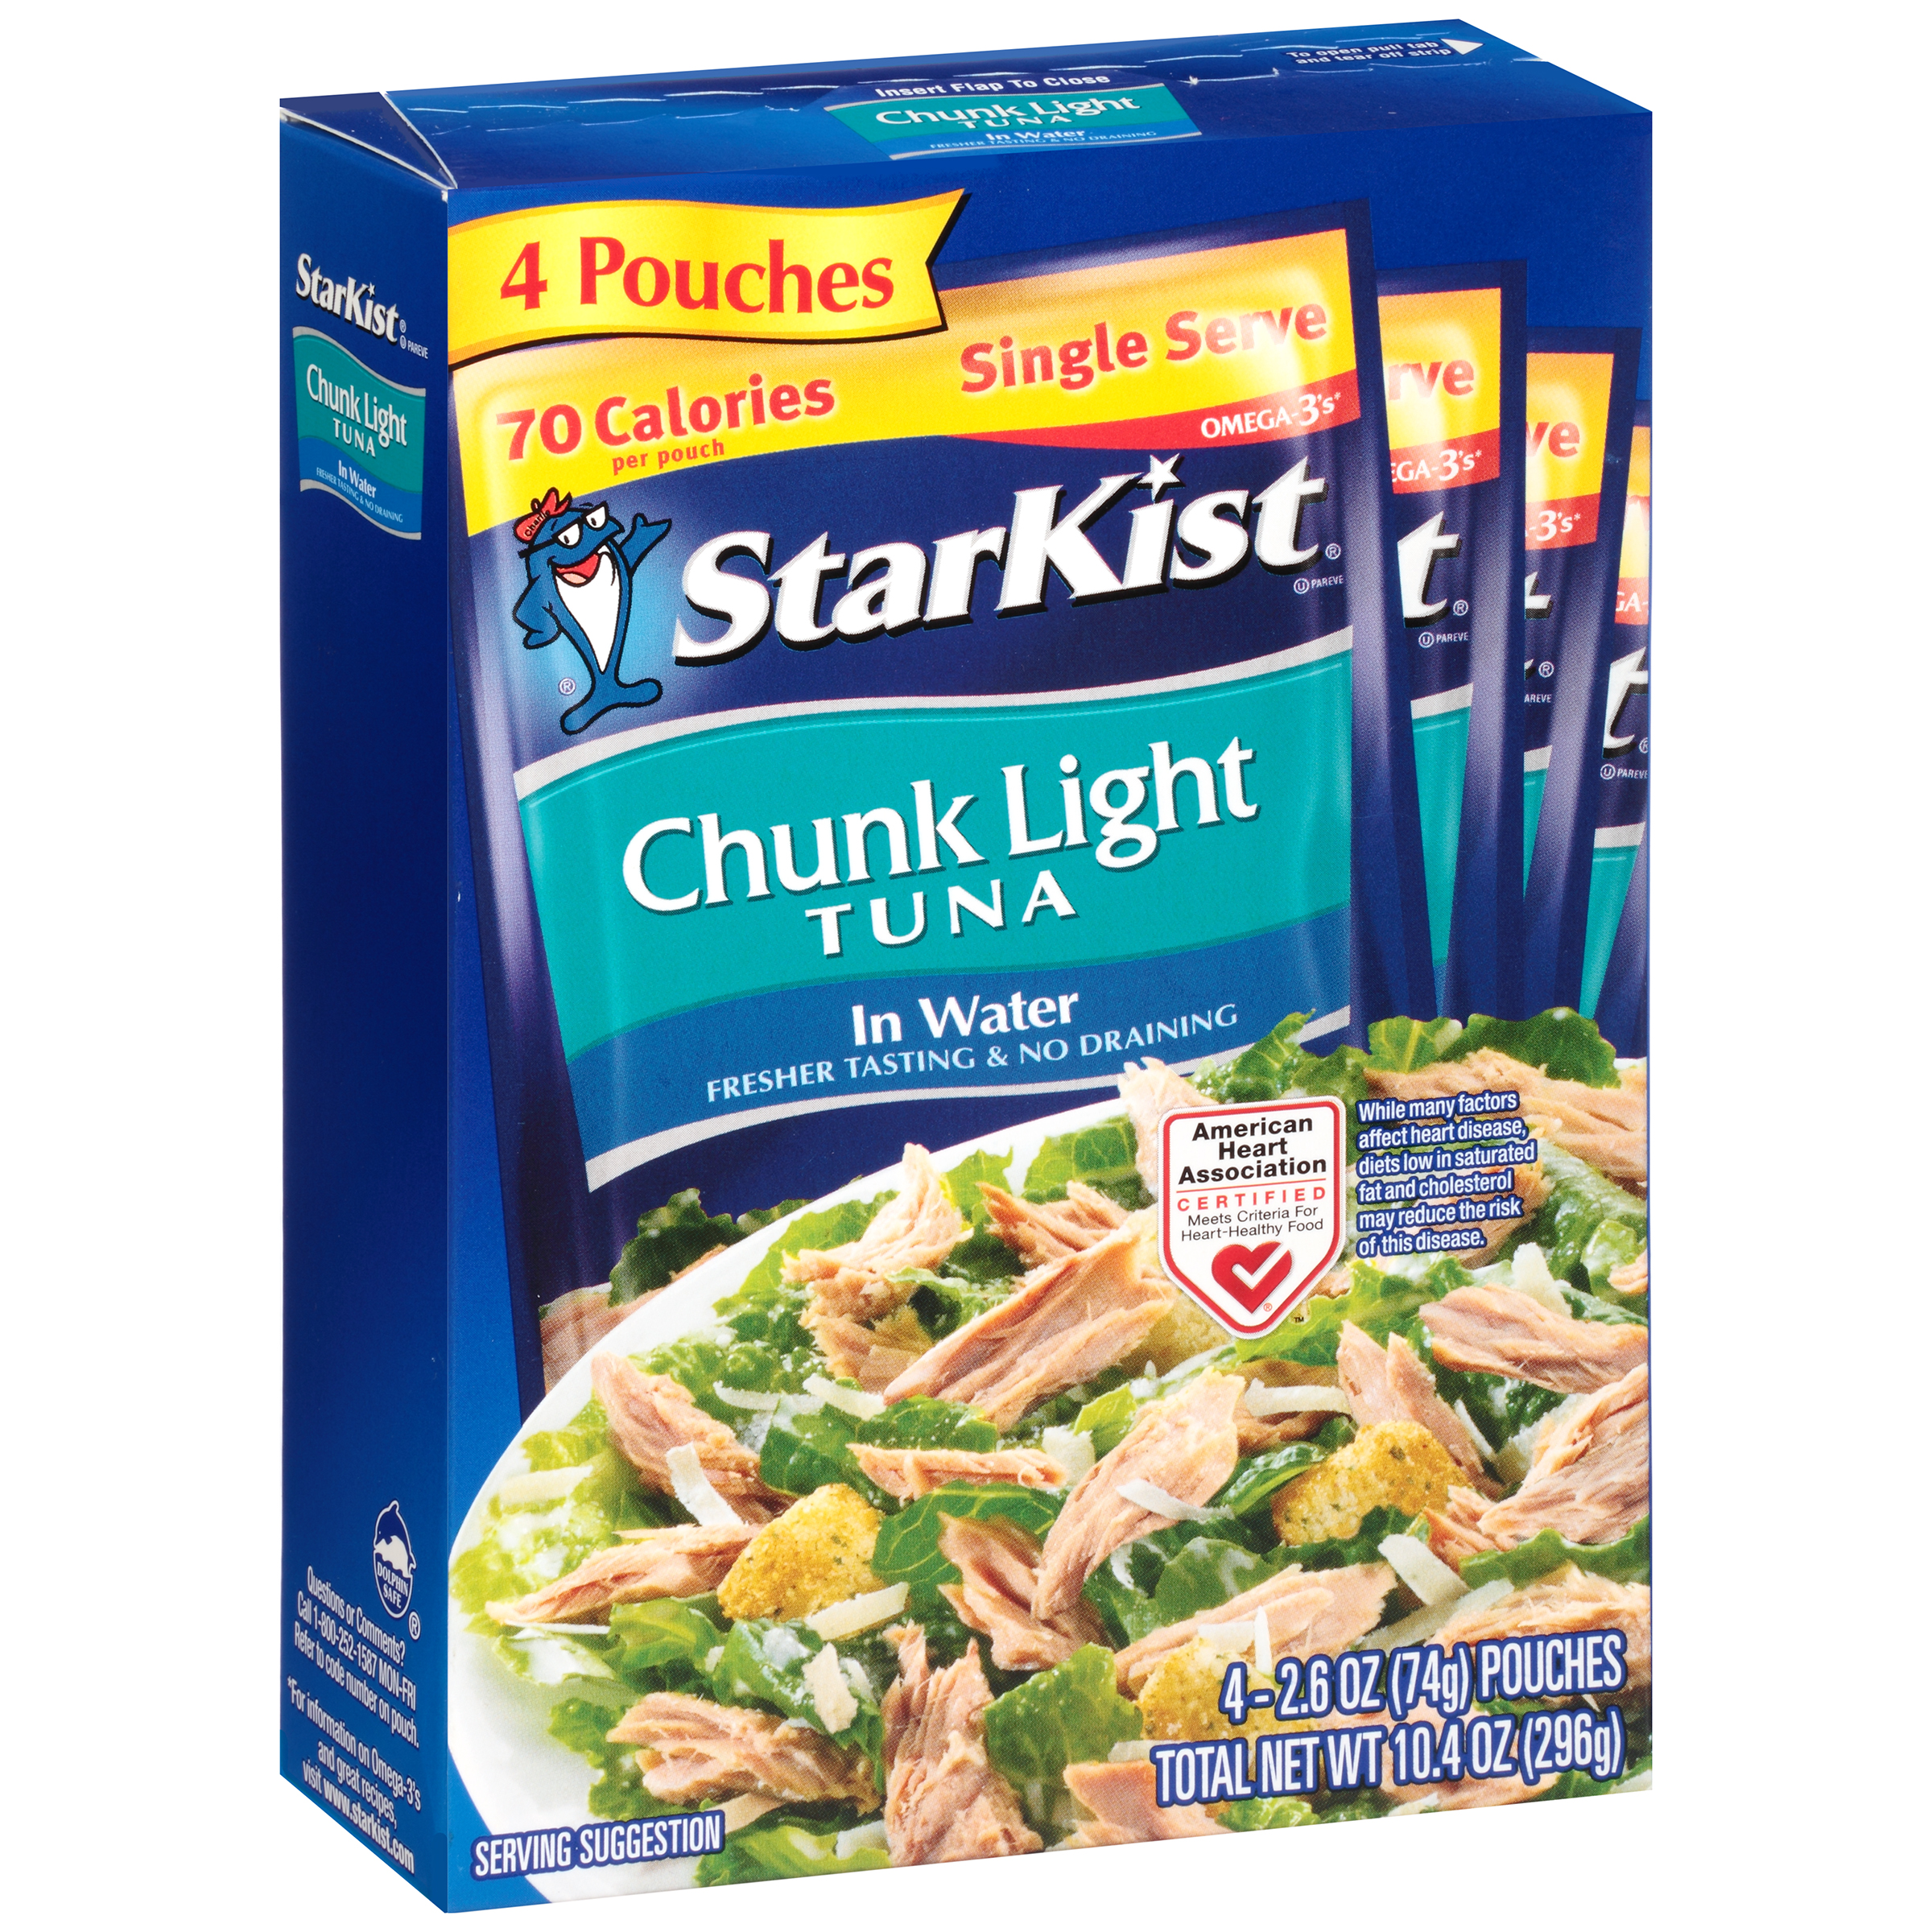 StarKist Chunk Light Tuna in Water - 2.6 Ounce Pouches (Pack of 4)